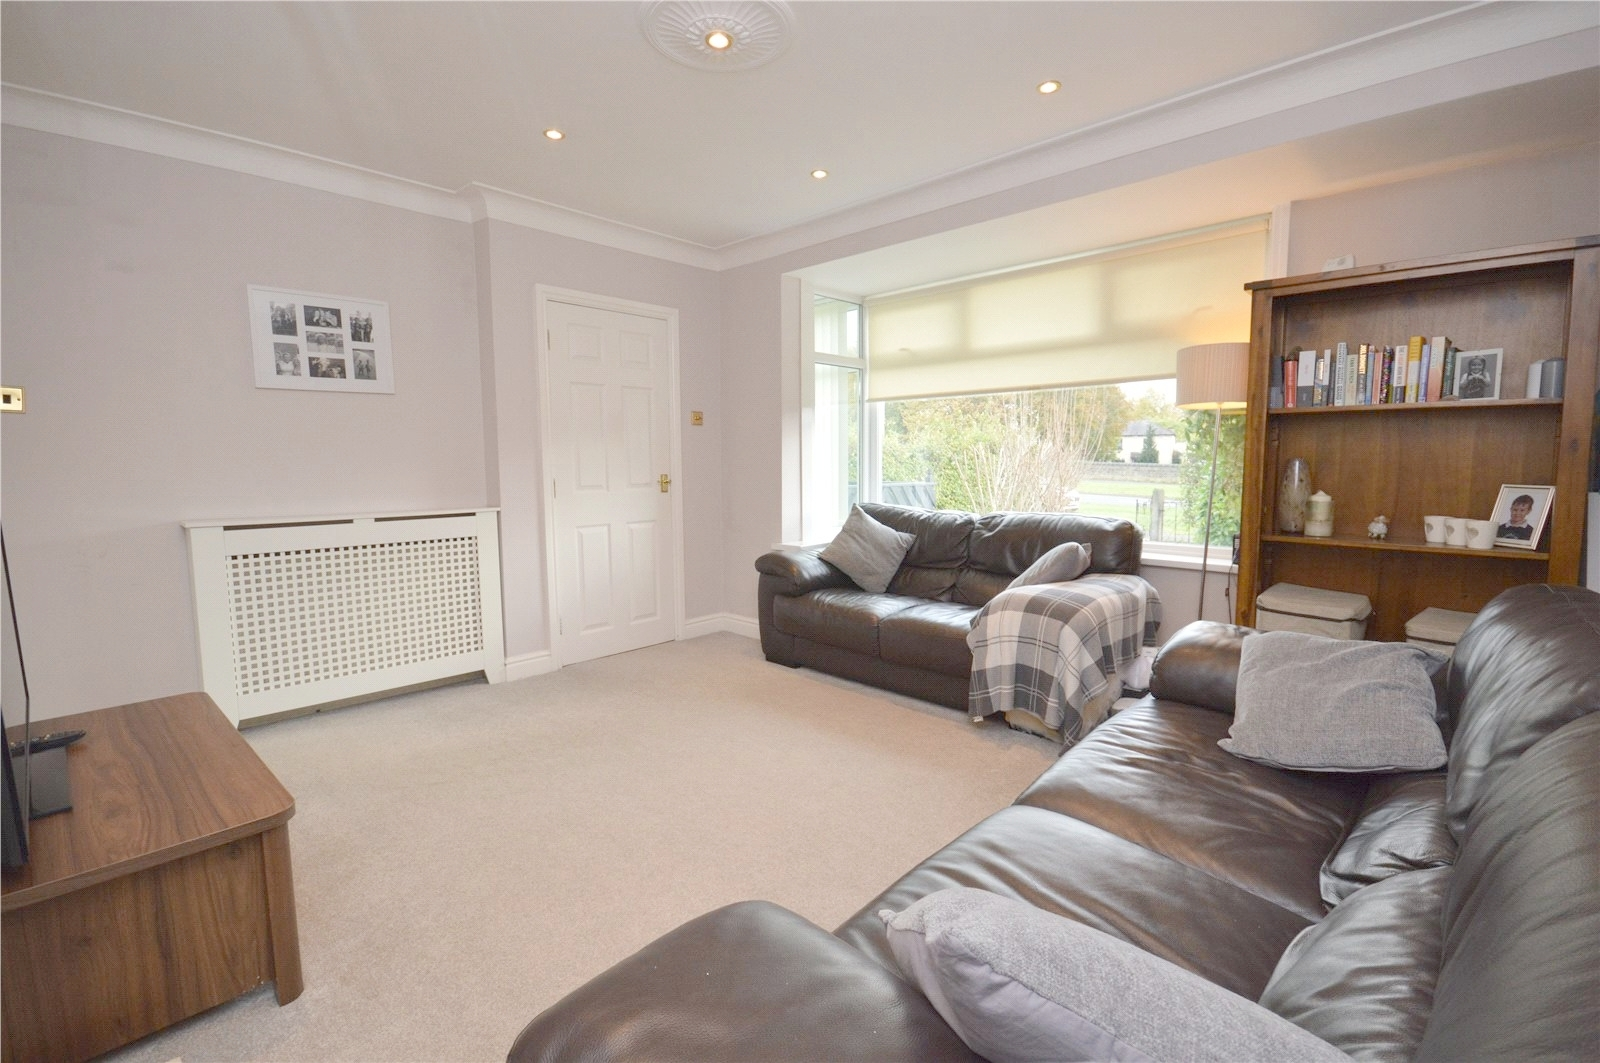 property for sale in Horsforth, reception room